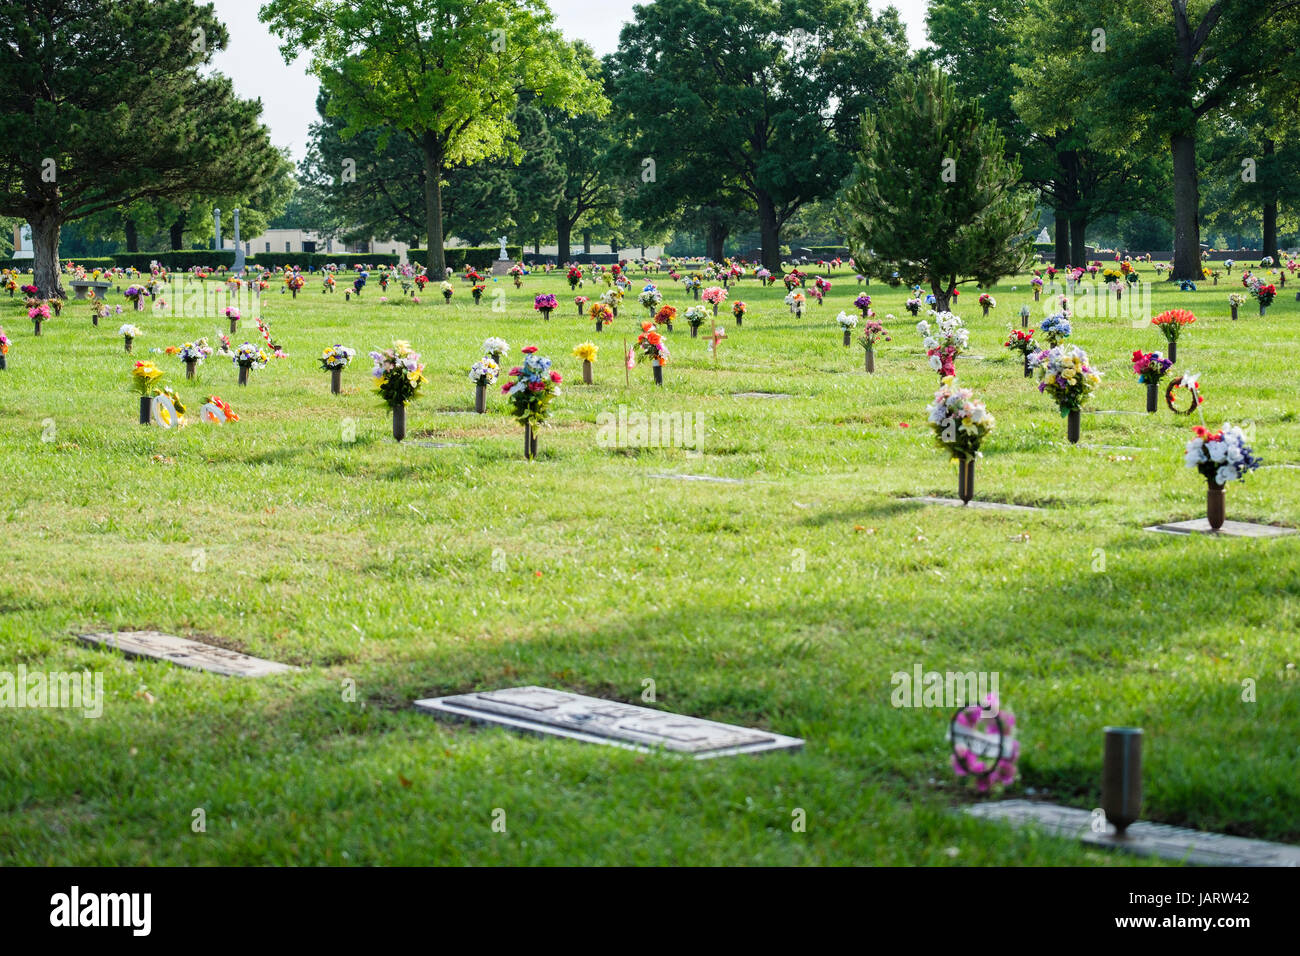 Gravesite floral decorations honoring the dead on Memorial Day in a cemetary in Wichita, Kansas, USA. Stock Photo